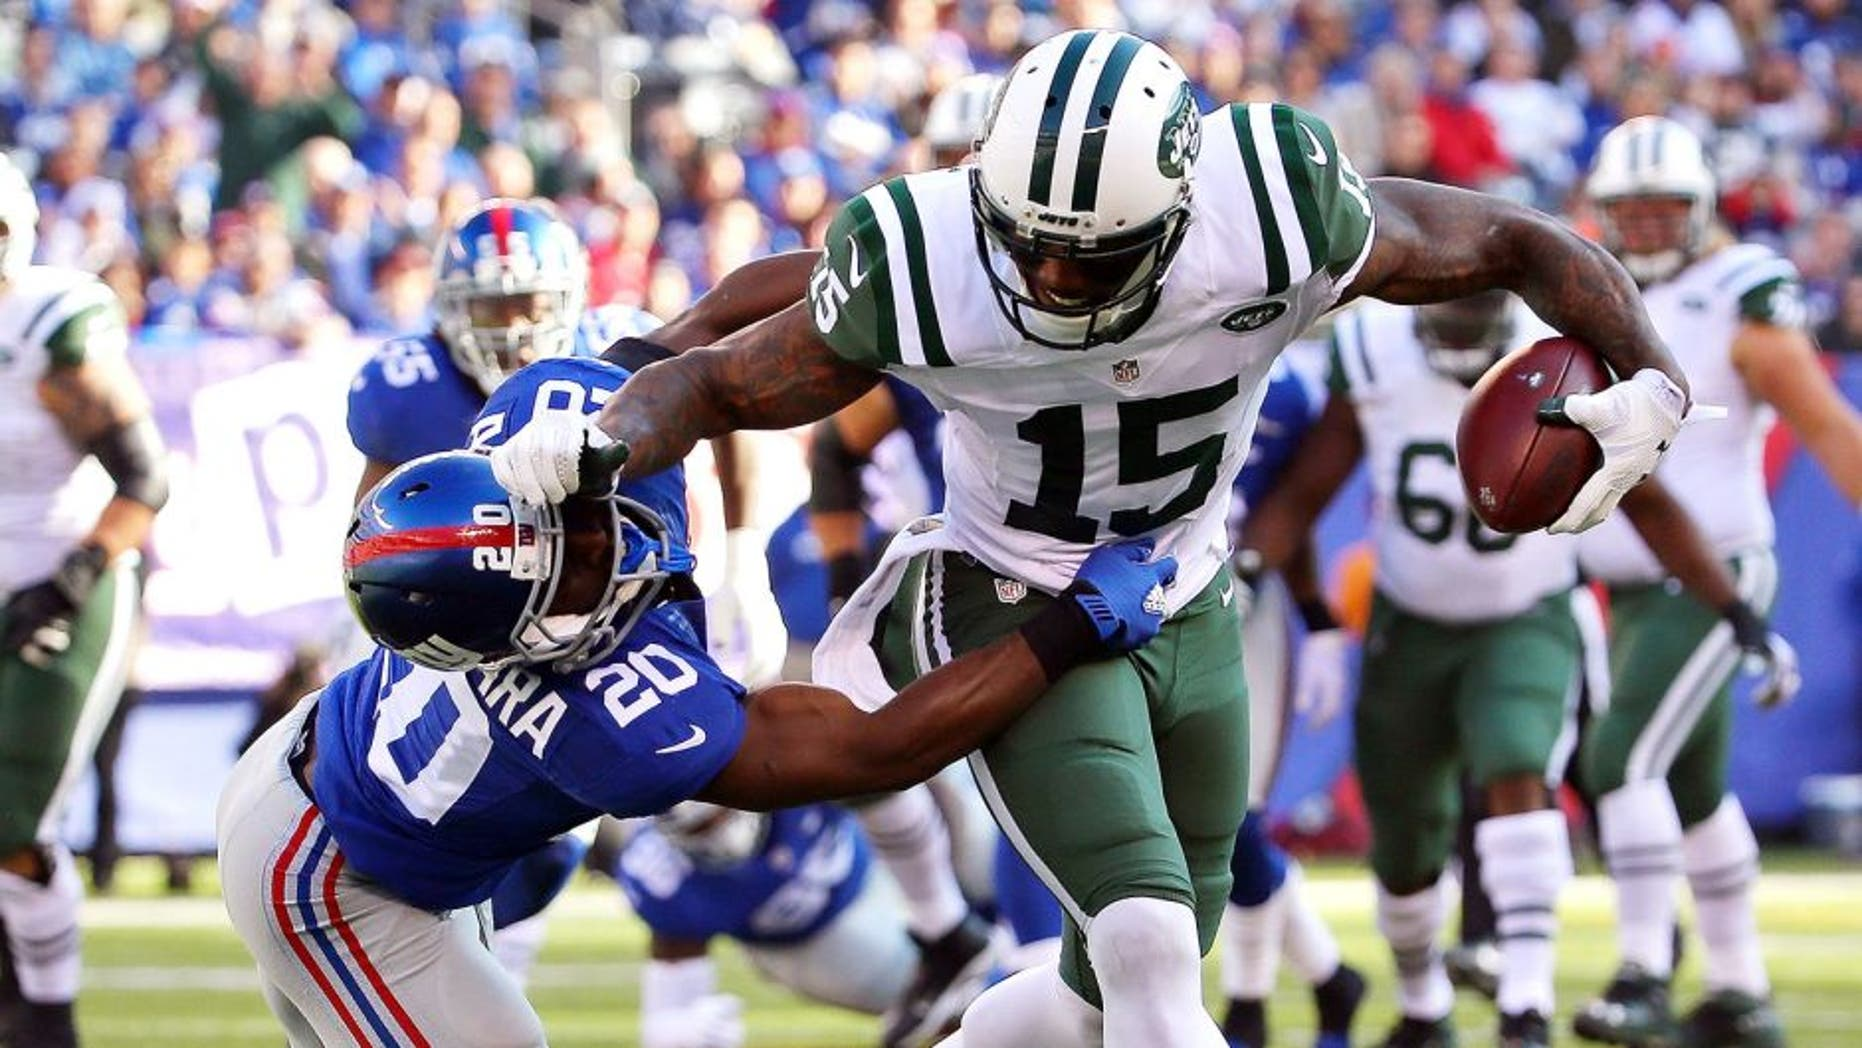 EAST RUTHERFORD, NJ - DECEMBER 06: Brandon Marshall #15 of the New York Jets runs with the ball against Prince Amukamara #20 of the New York Giants at MetLife Stadium on December 6, 2015 in East Rutherford, New Jersey. (Photo by Al Bello/Getty Images)